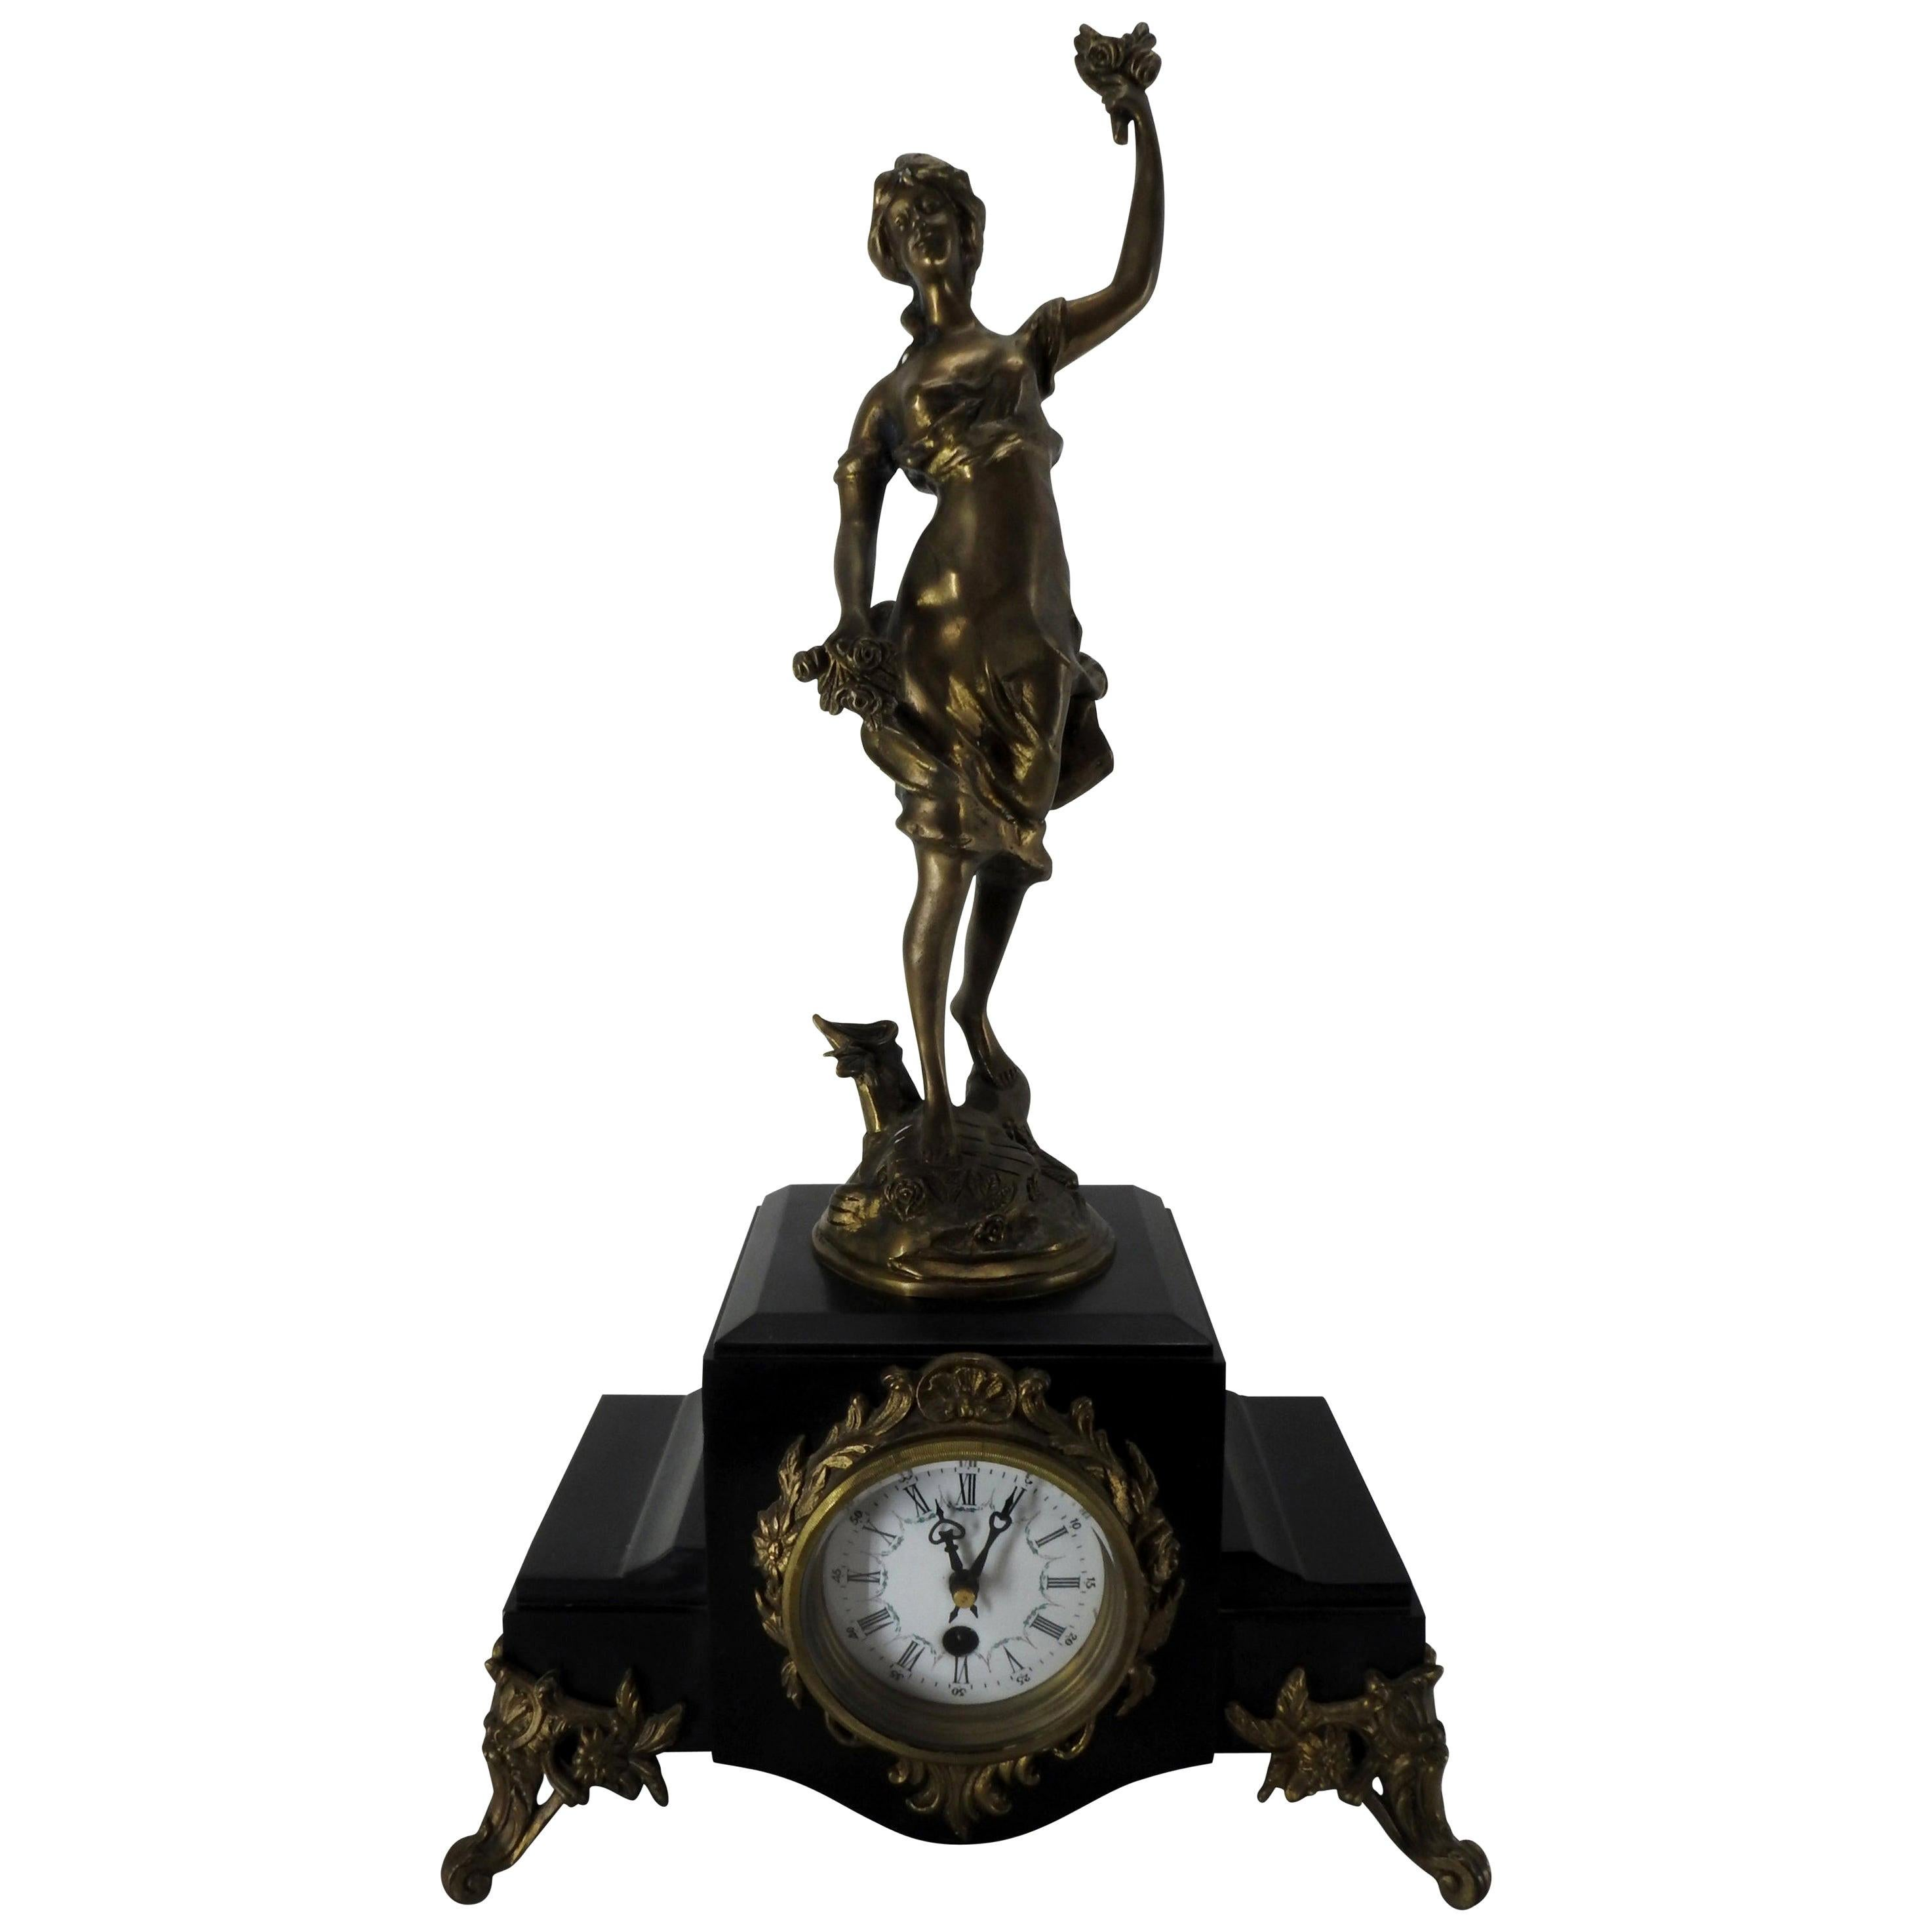 French Clock with Bronze Figure Signed S. Suirat